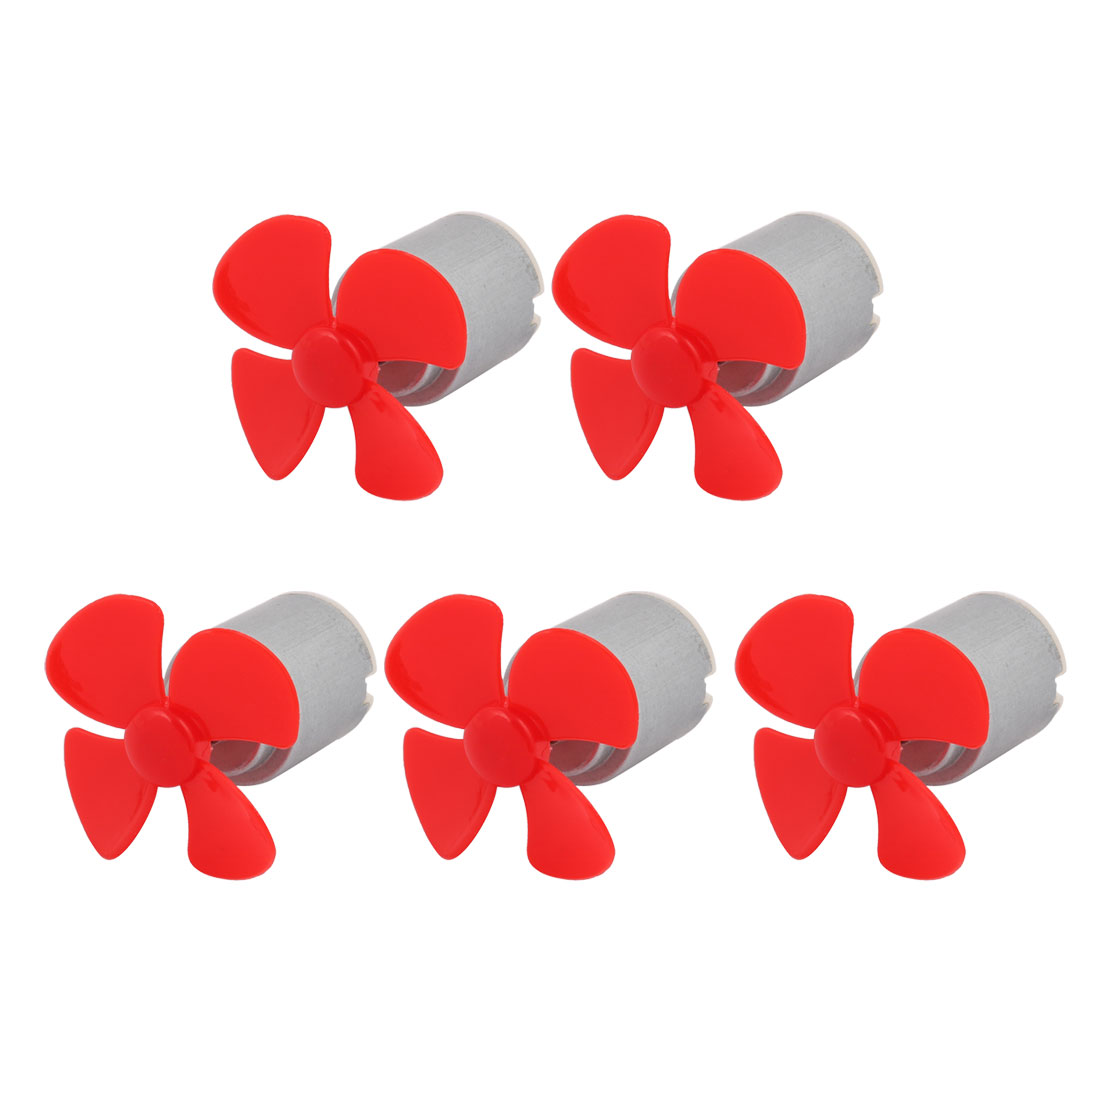 5pcs DC 3V 0.15A 19500RPM Red Strong Force Motor 4 Vanes 40mm Propeller for RC Aircraft